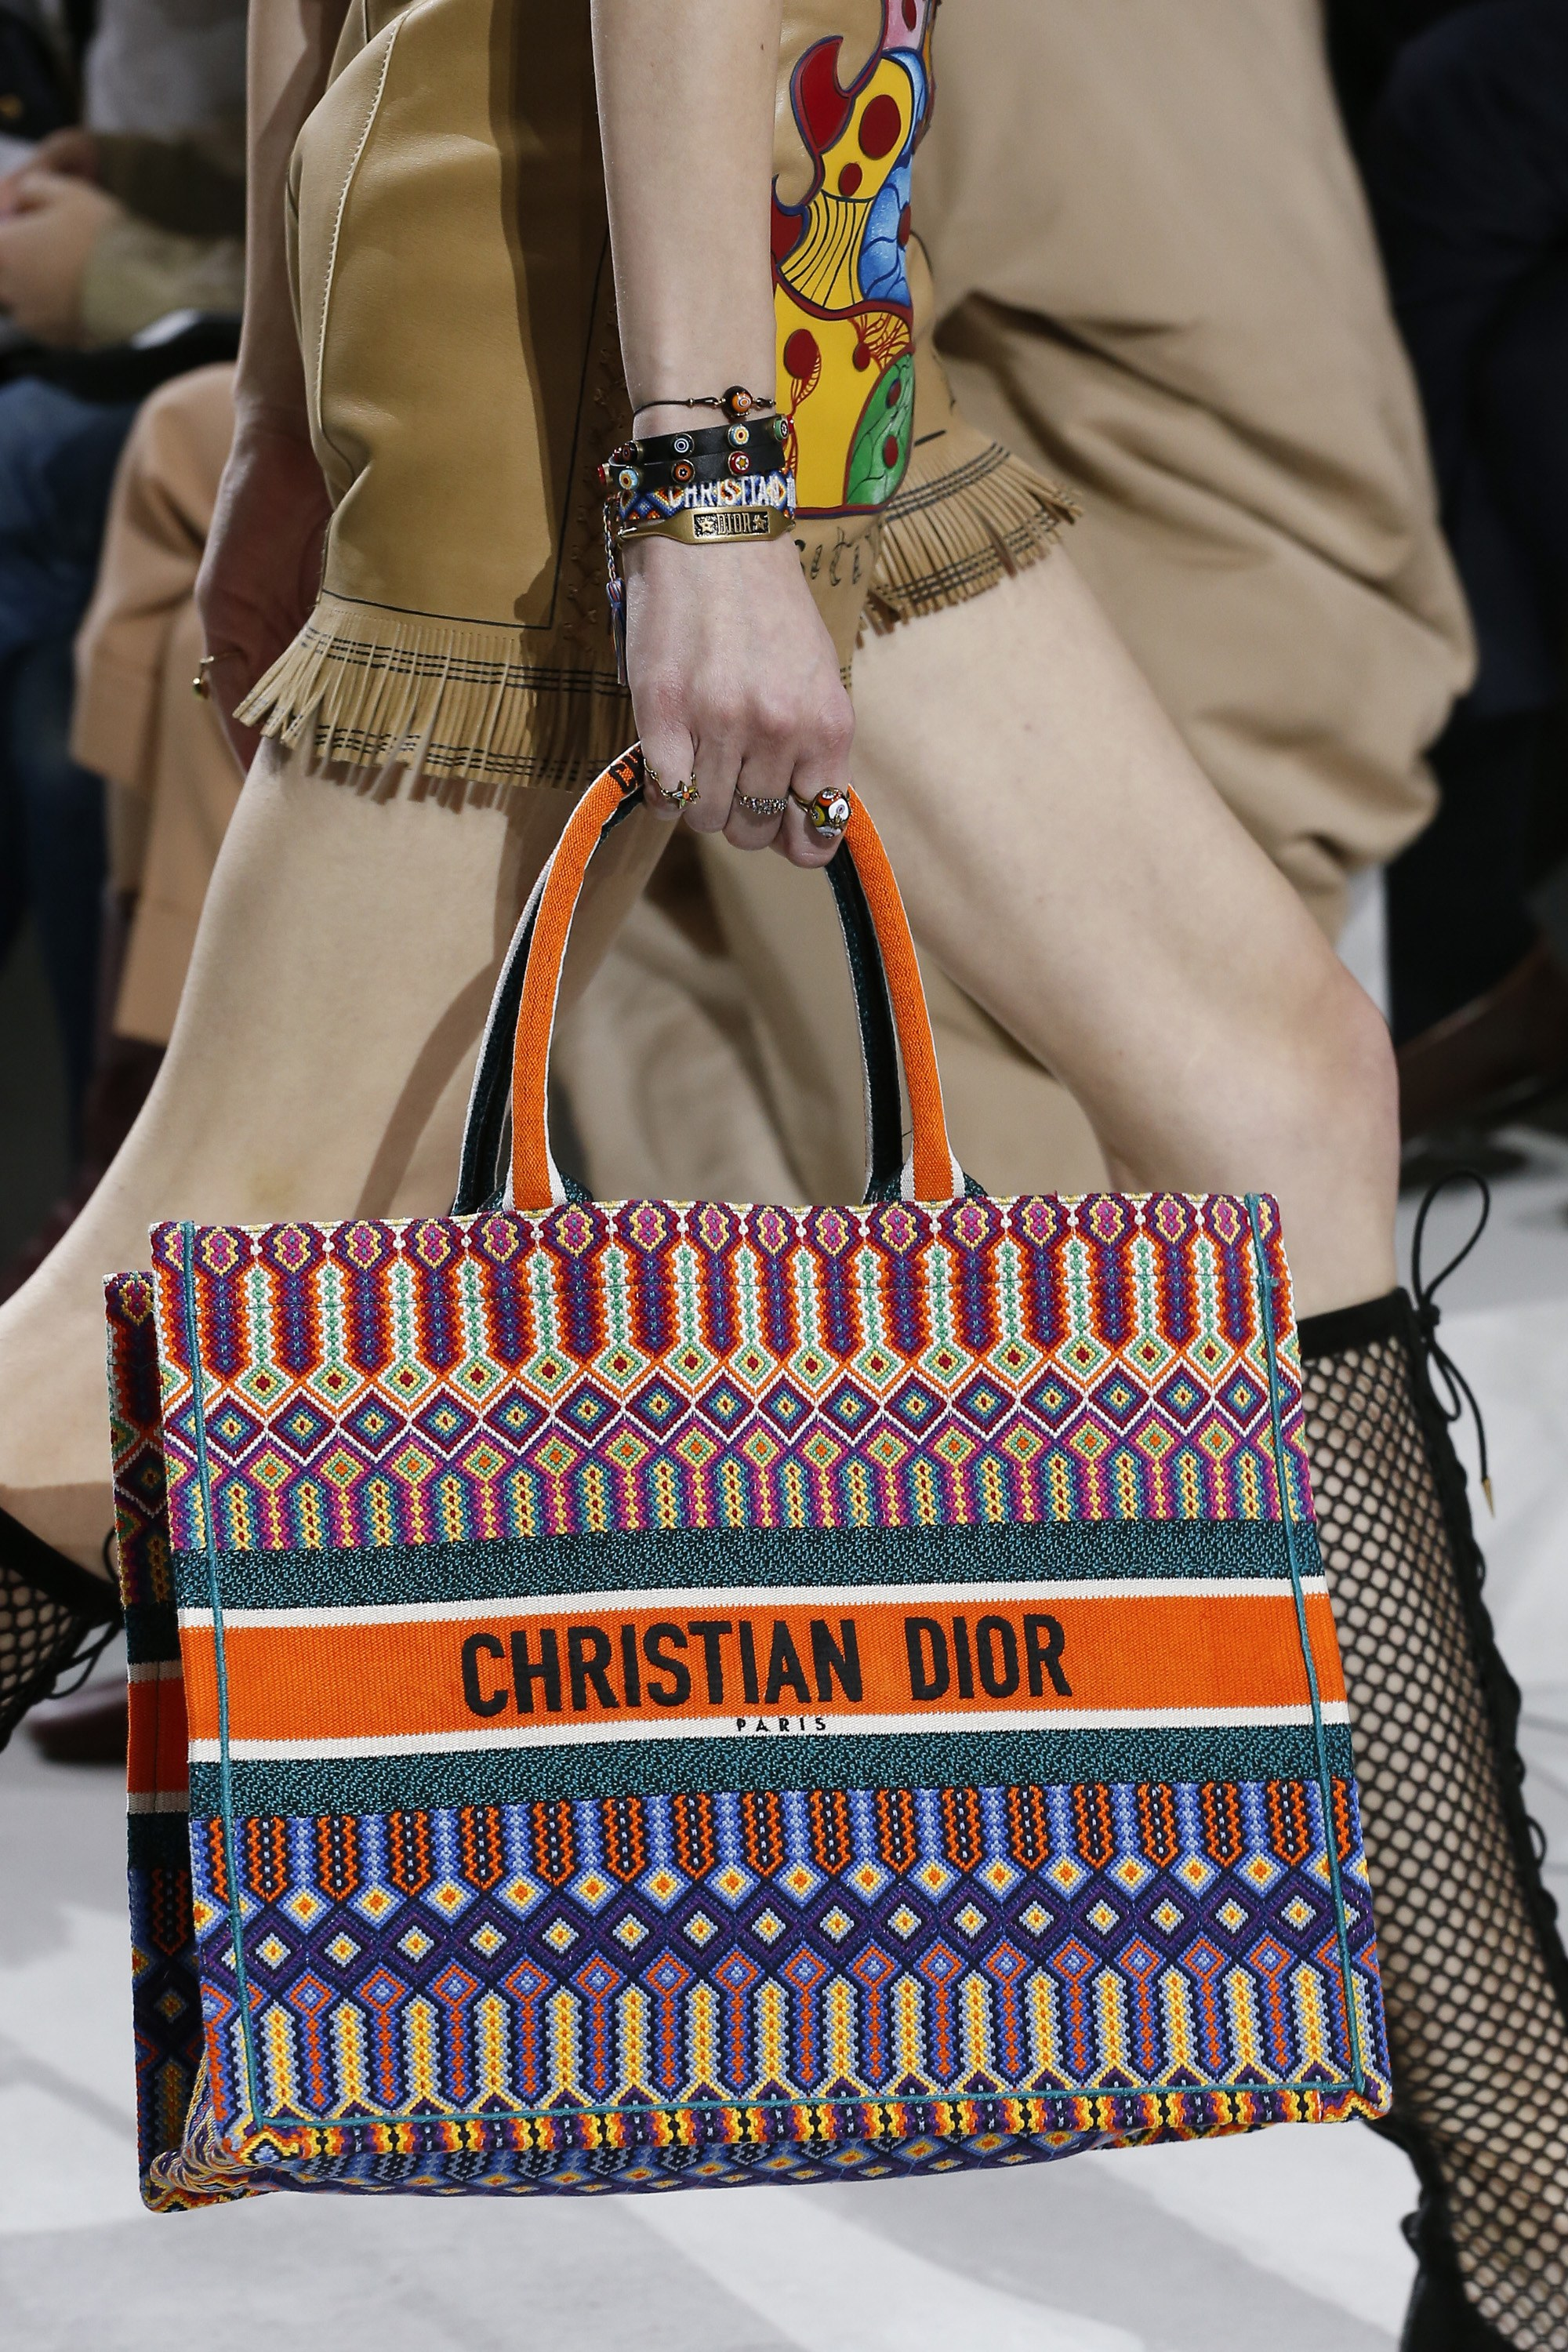 Dior Spring Summer 2018 Runway Bag Collection Spotted